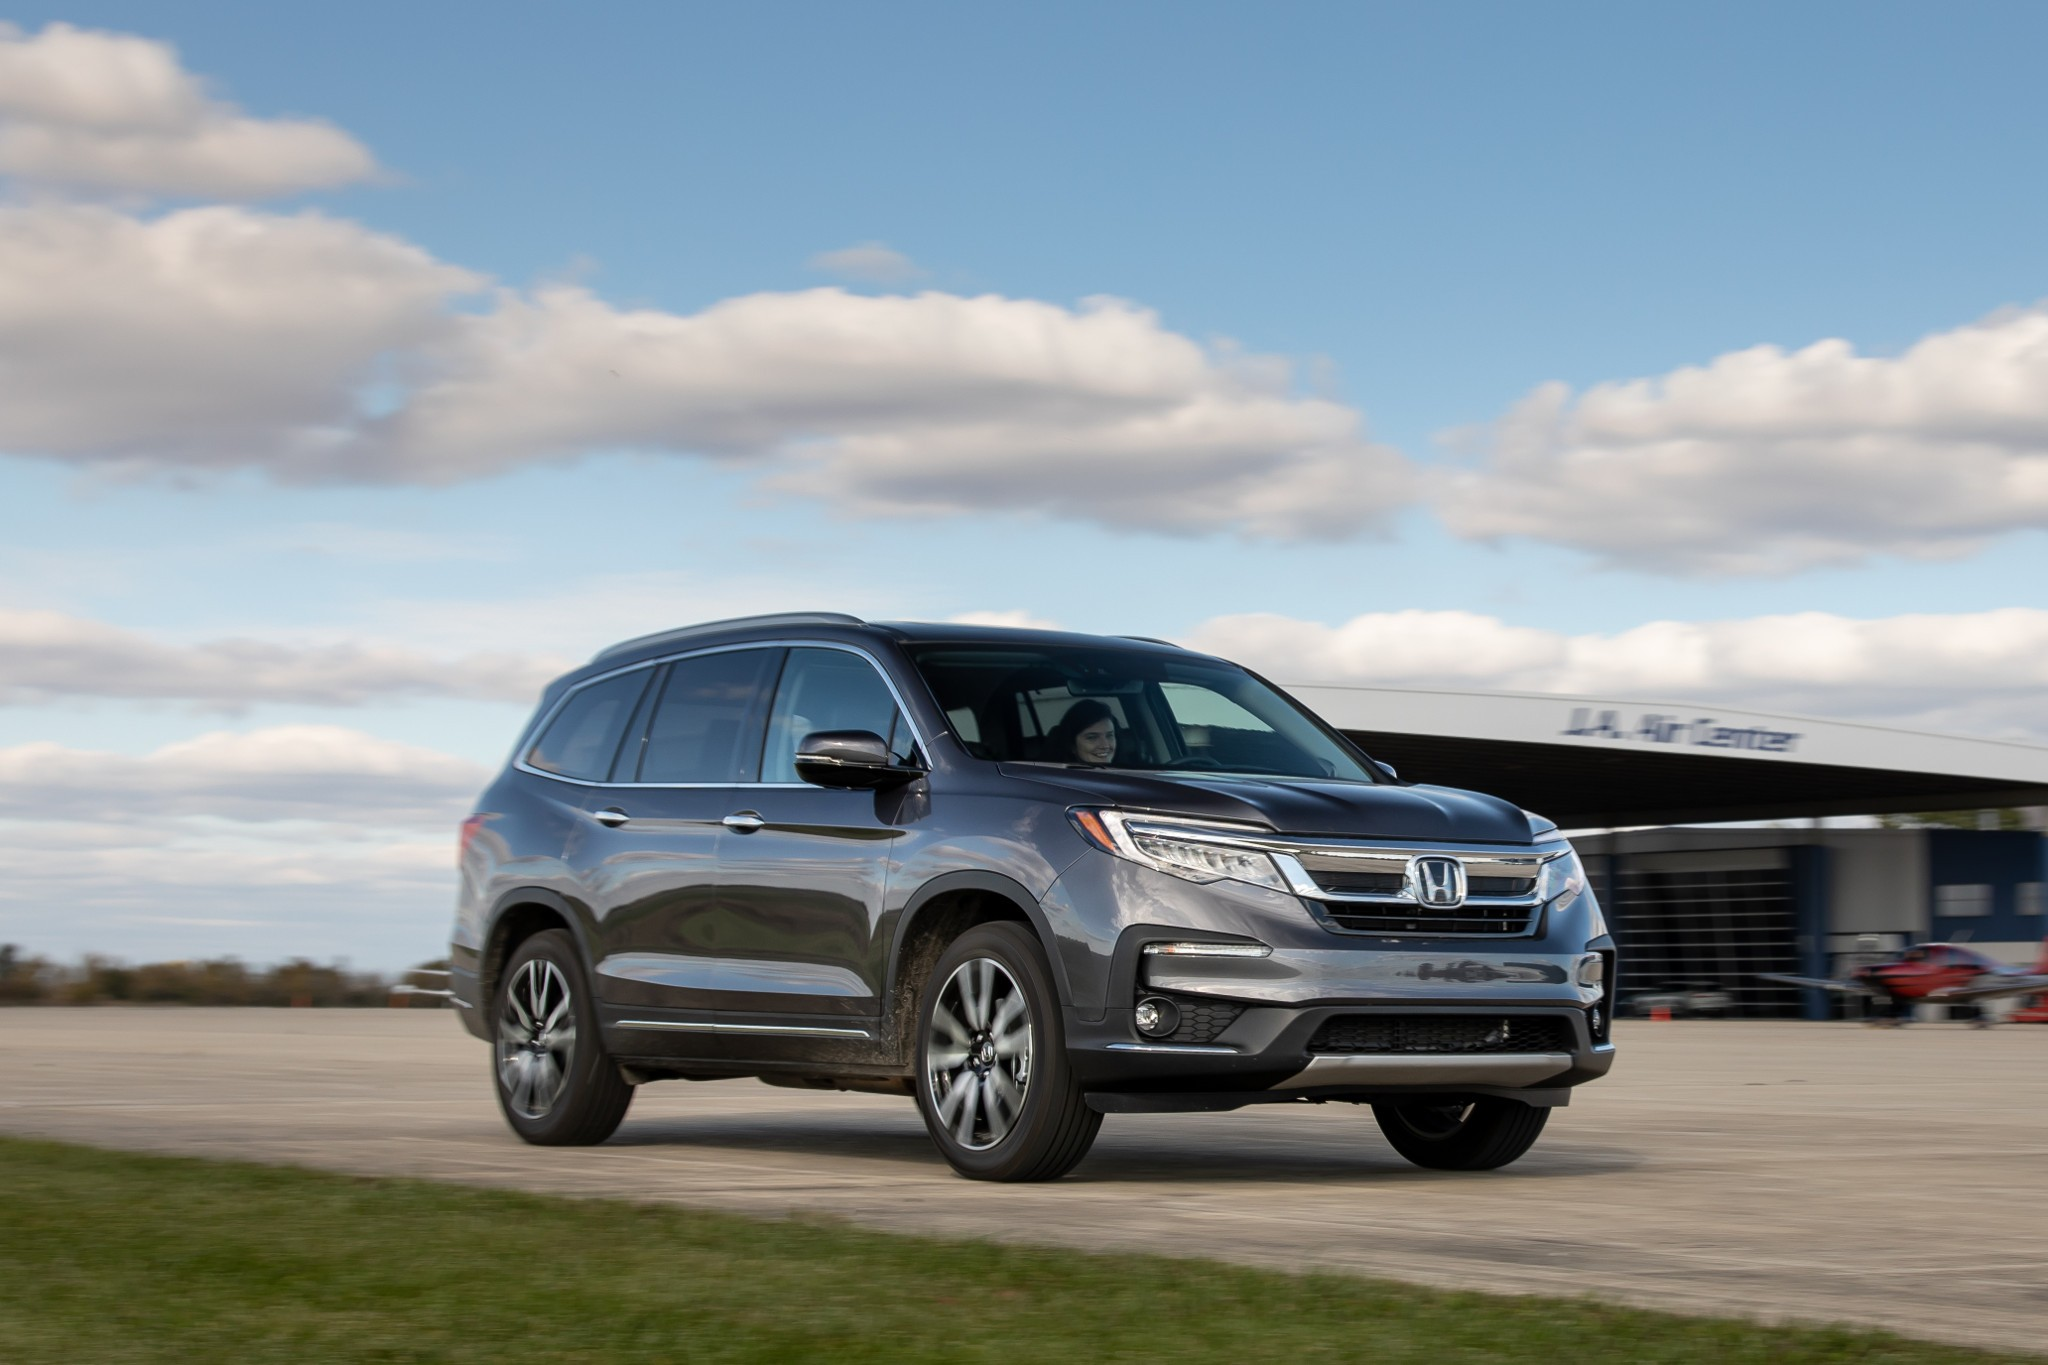 2020 Honda Pilot Review: Showing Its Age